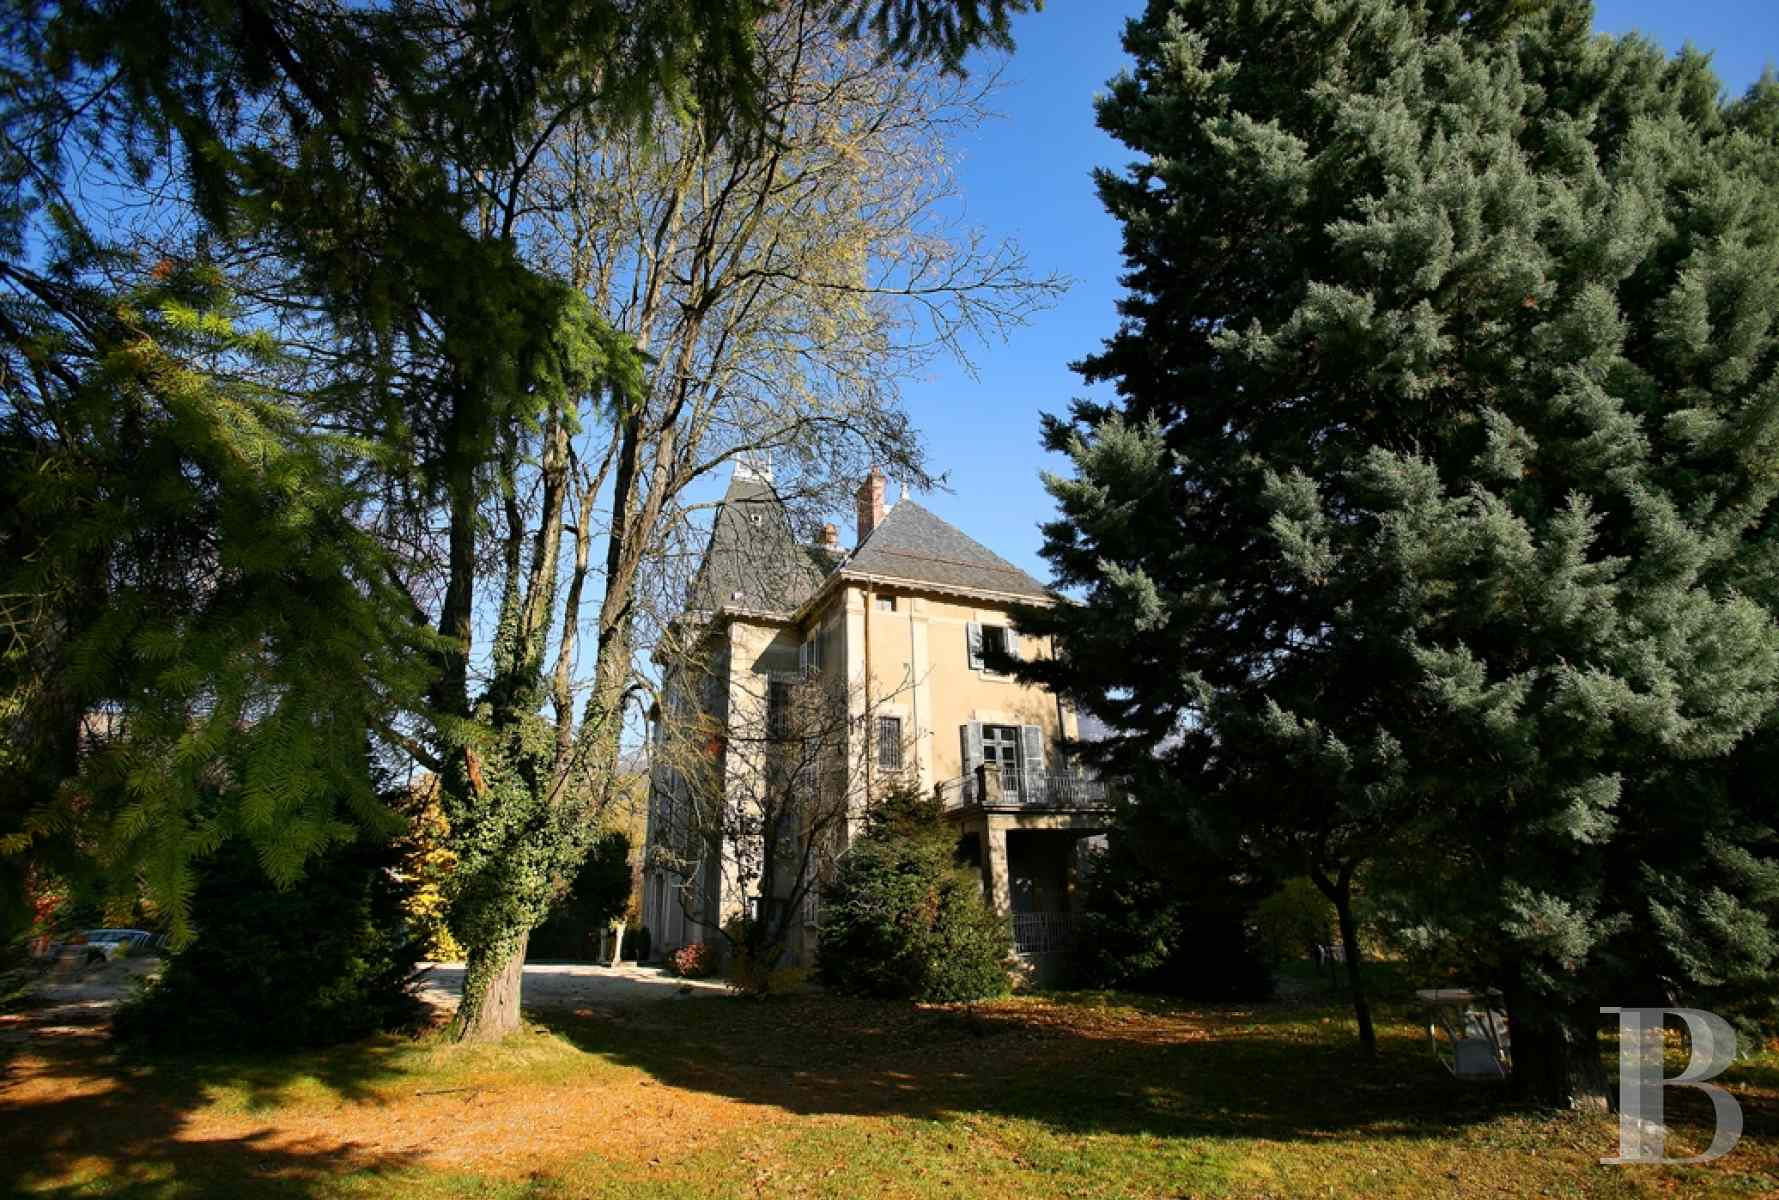 chateaux for sale France rhones alps chambery 18th - 2 zoom